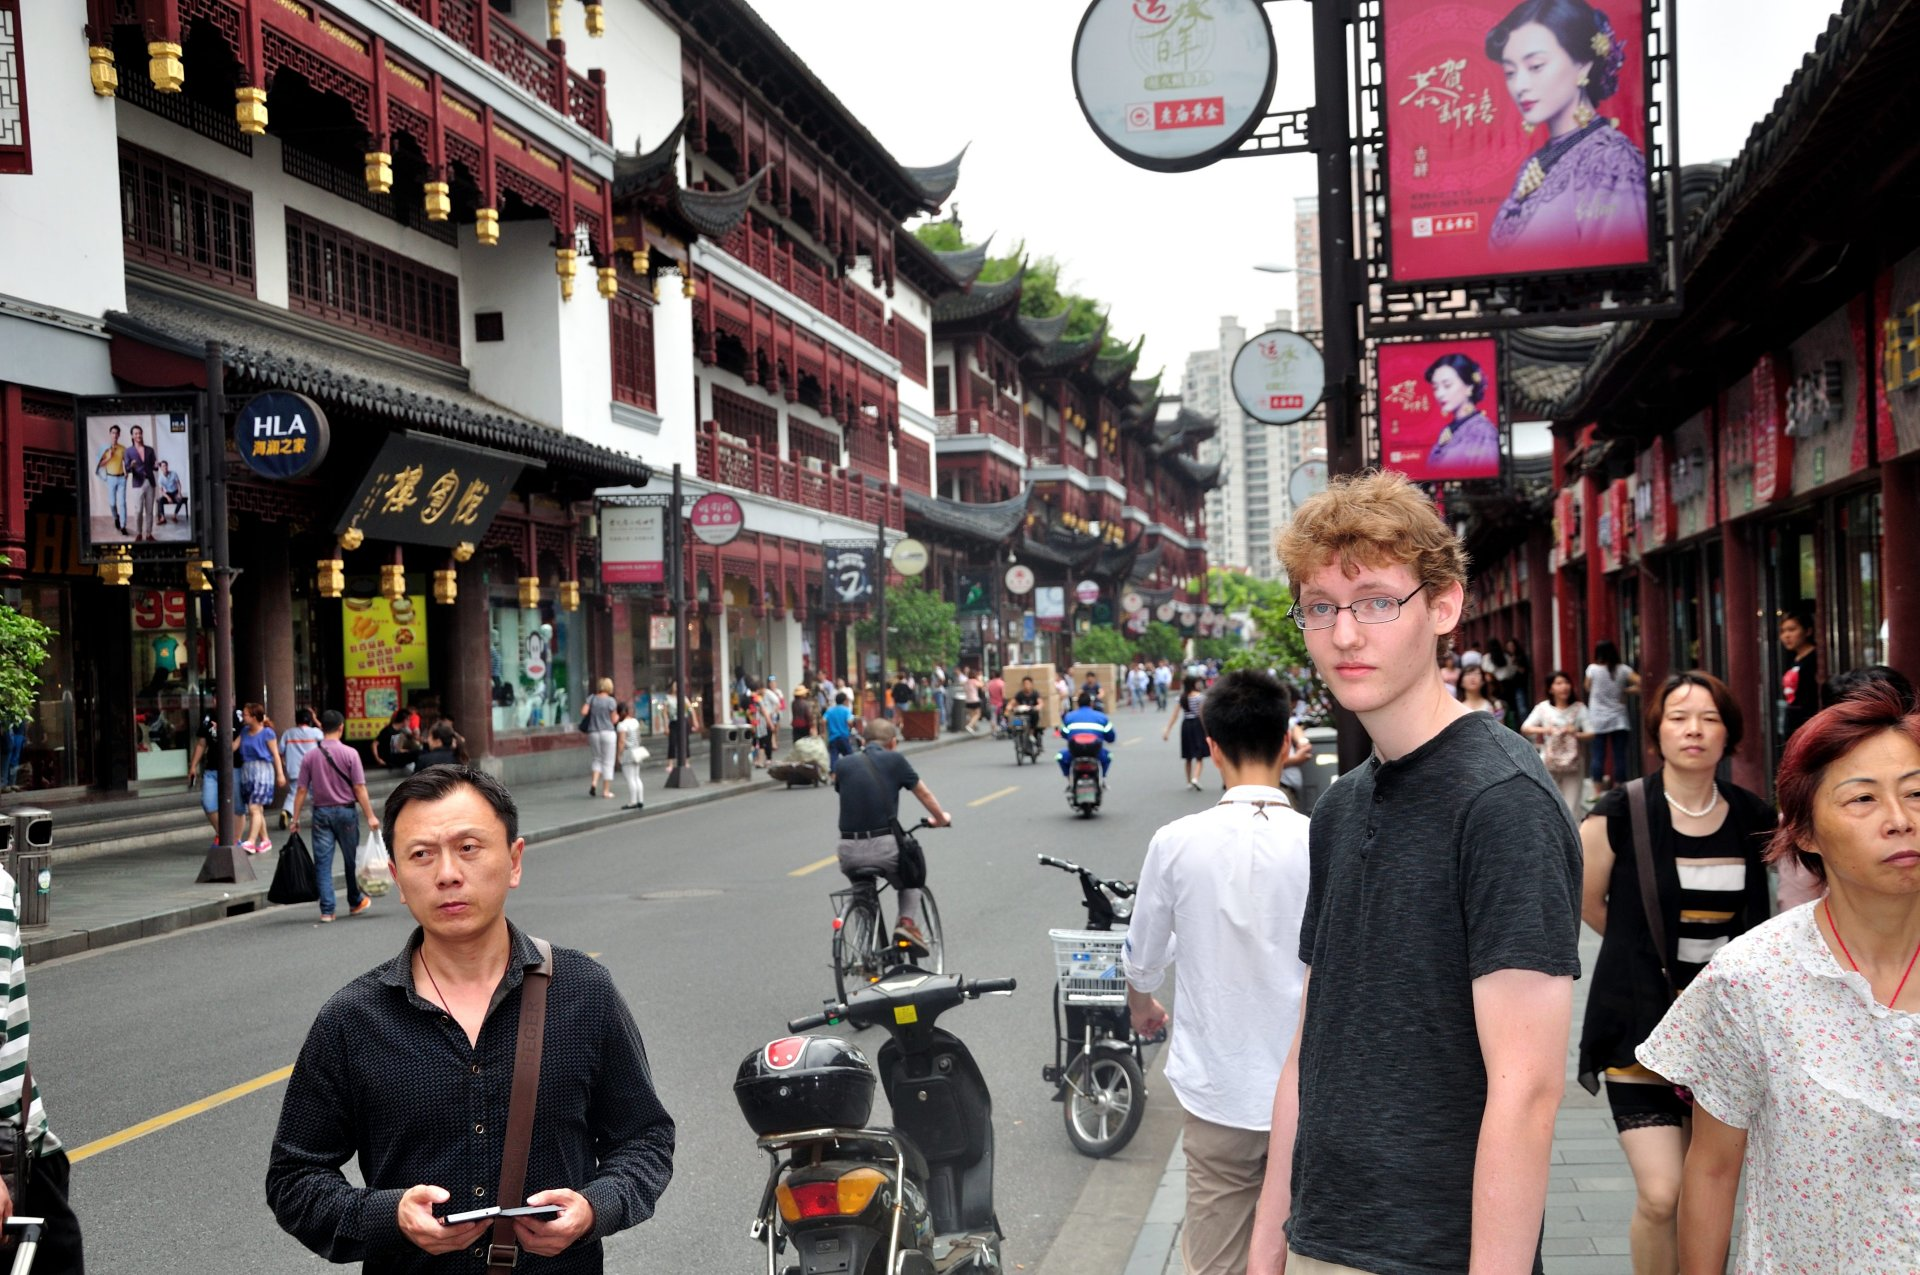 Kevin in Old Town Shanghai